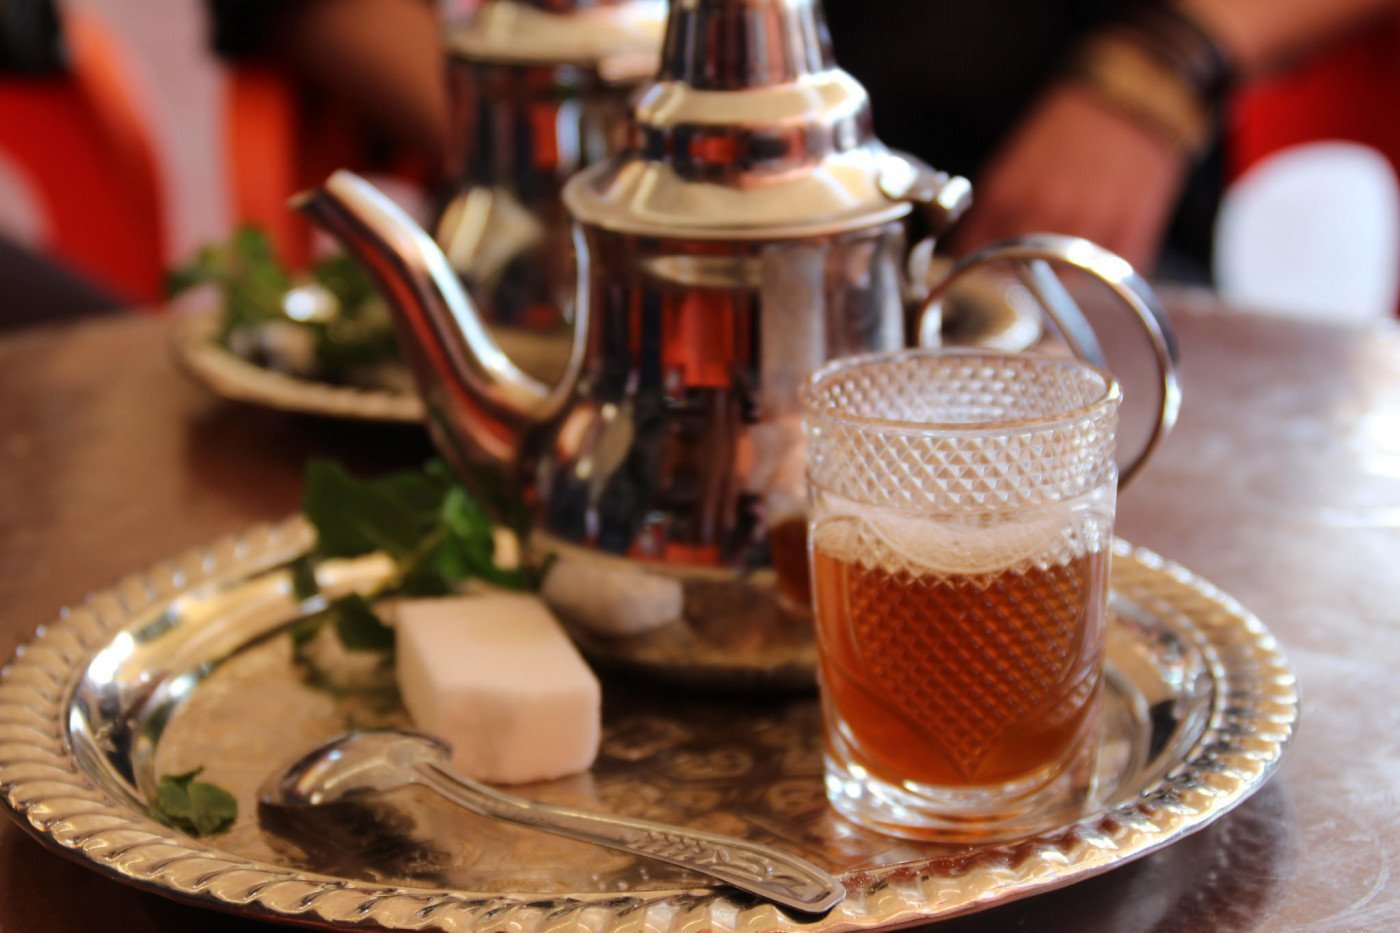 Moroccan mint tea. YUM! Photo via Flickr Creative Commons by Thibaut Démare